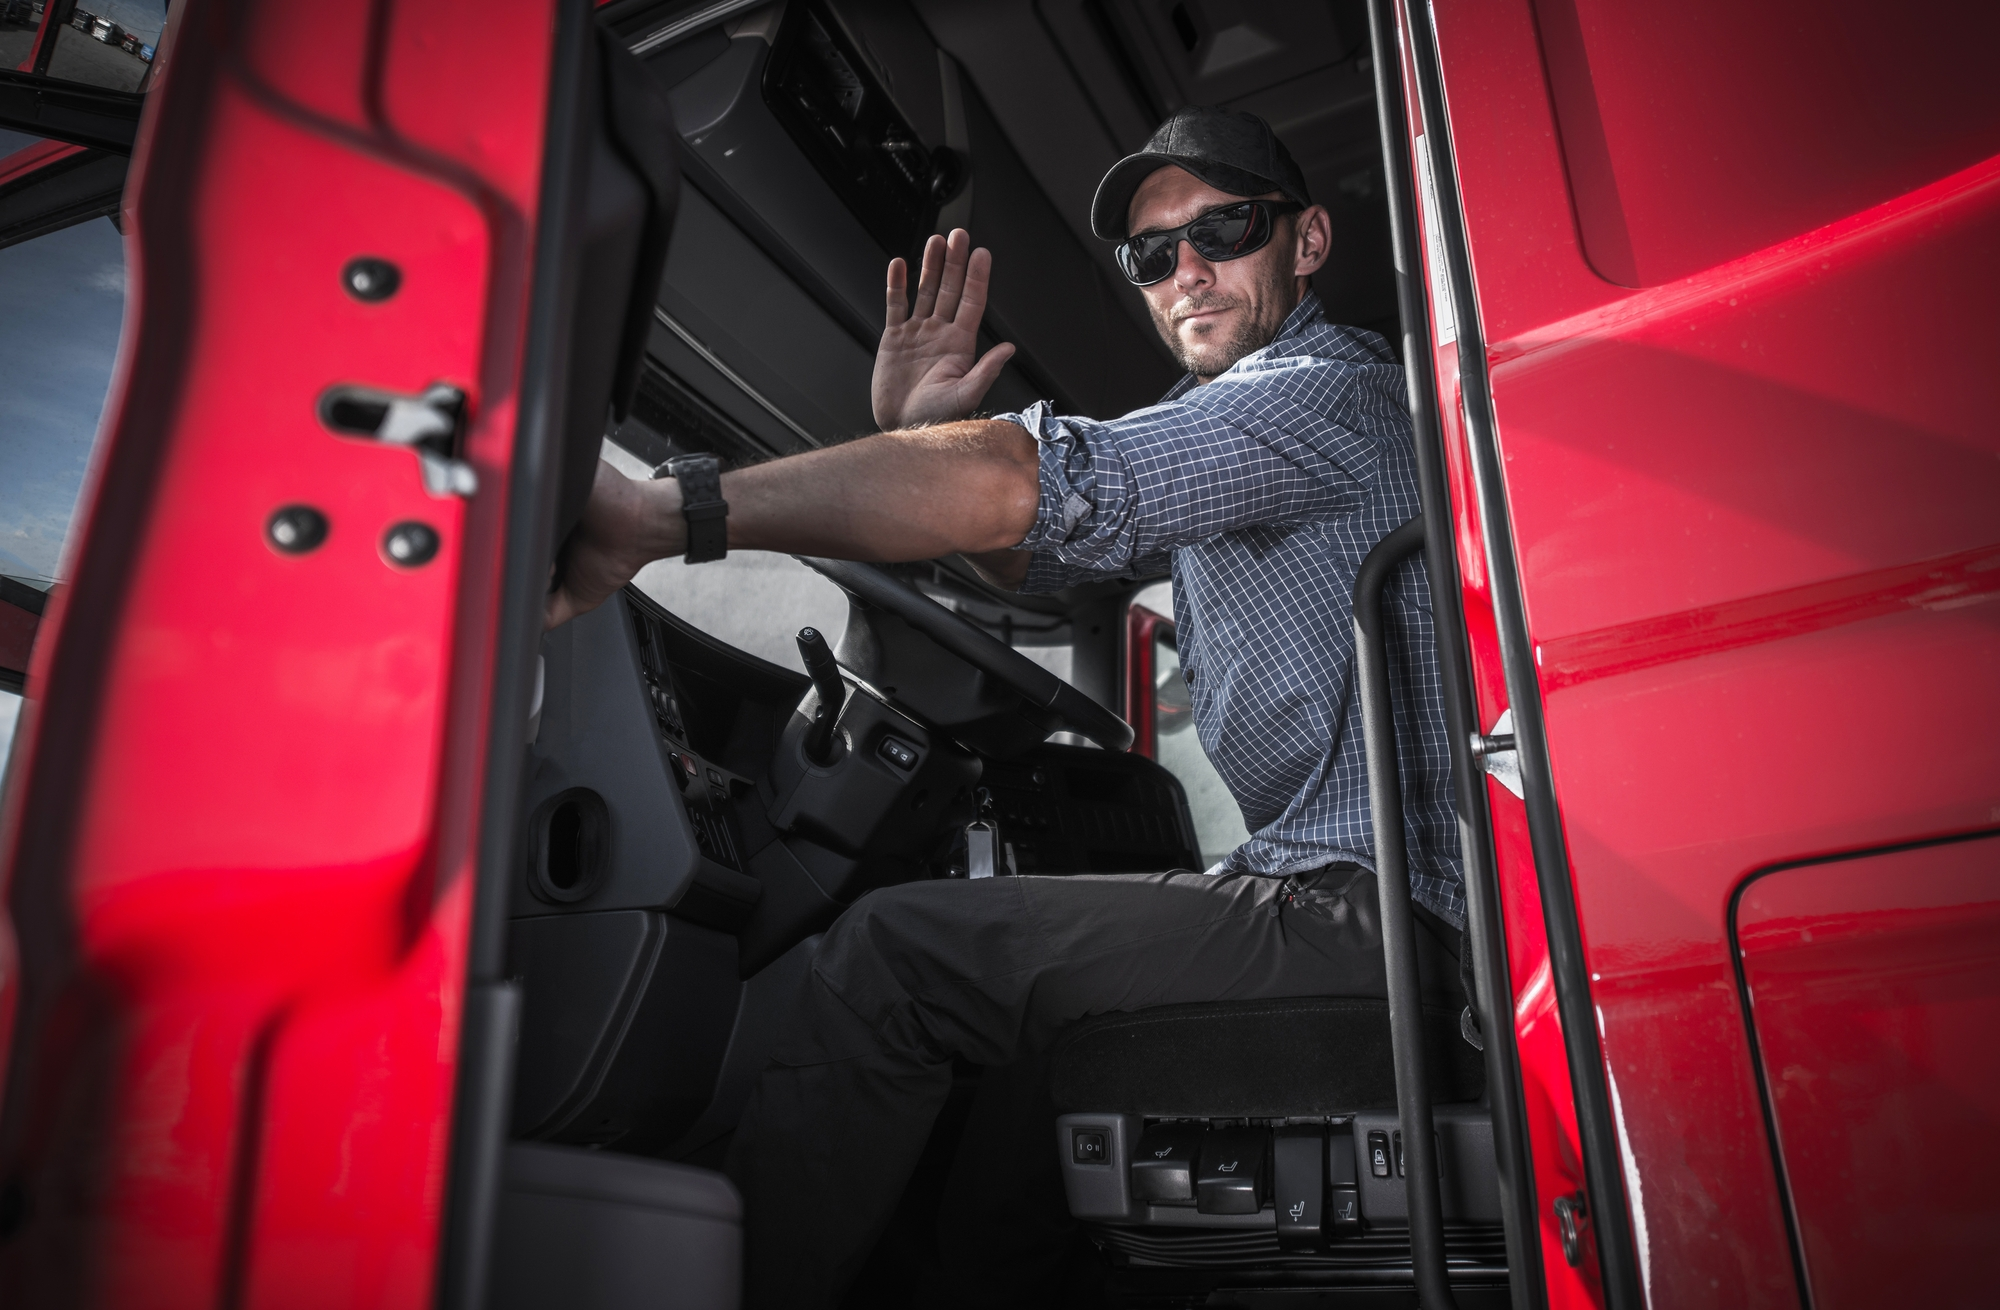 A truck driver waves from the driver seat